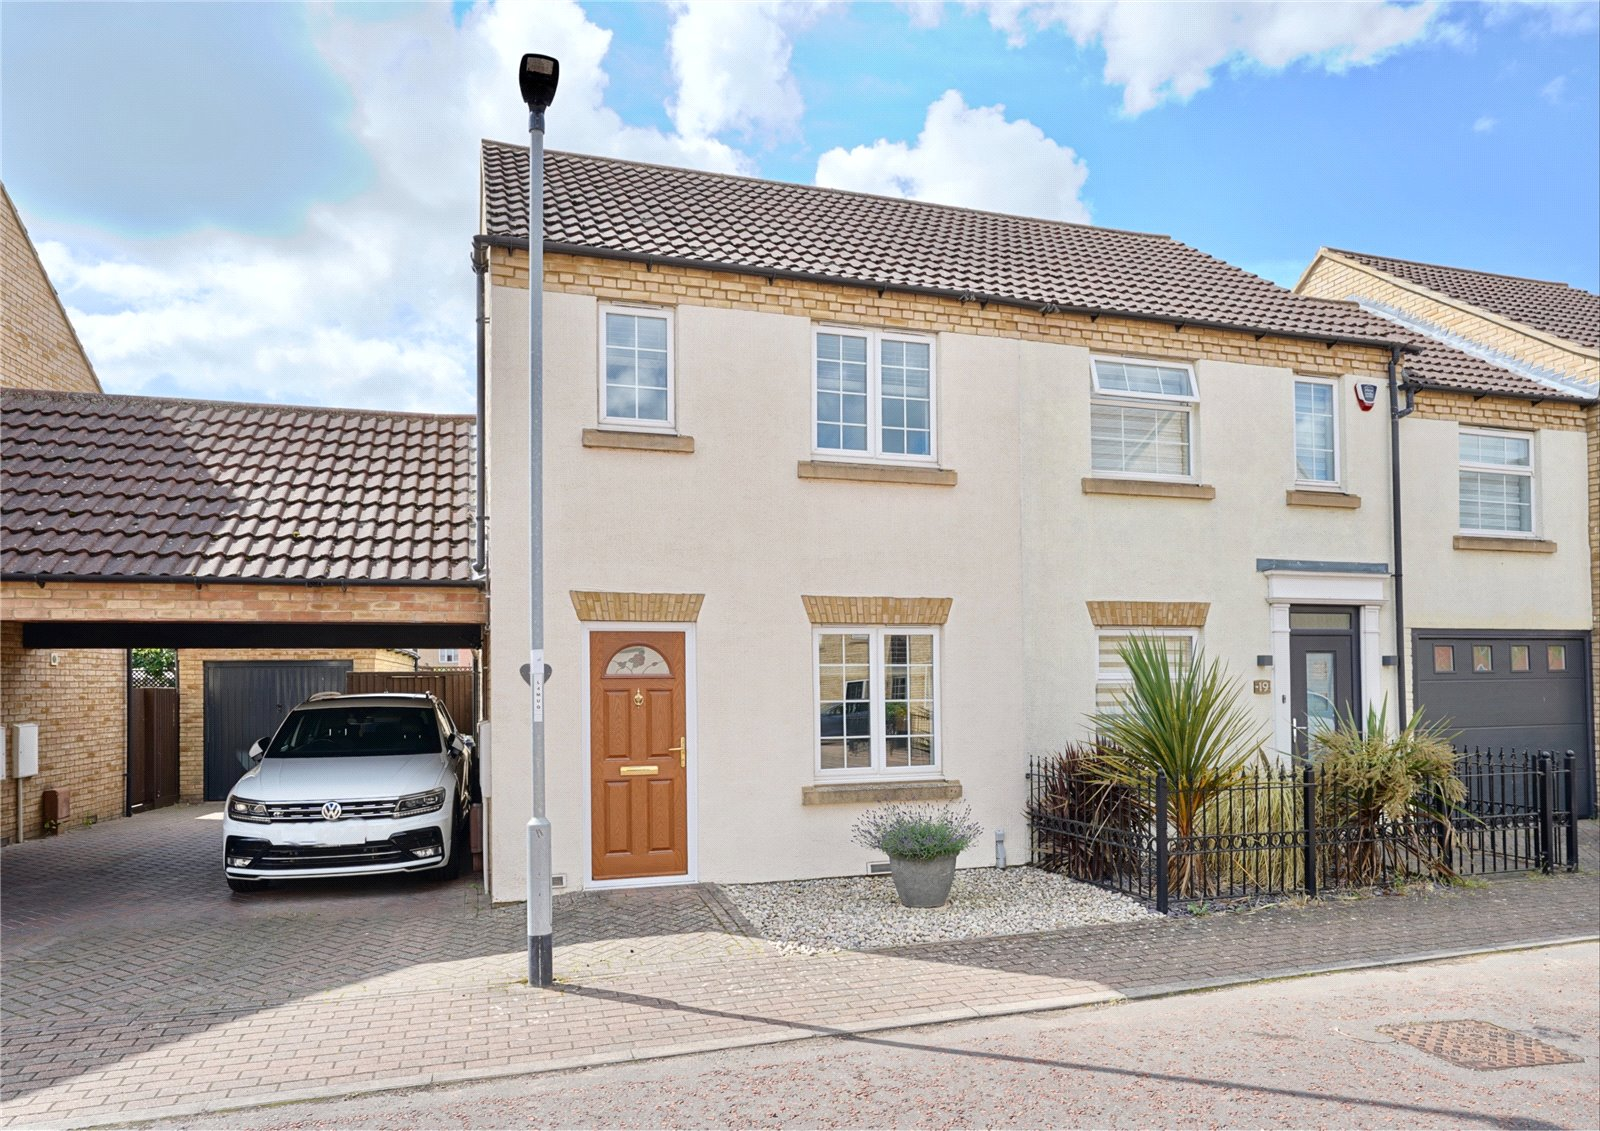 2 bed  for sale in Ream Close, Eynesbury, PE19